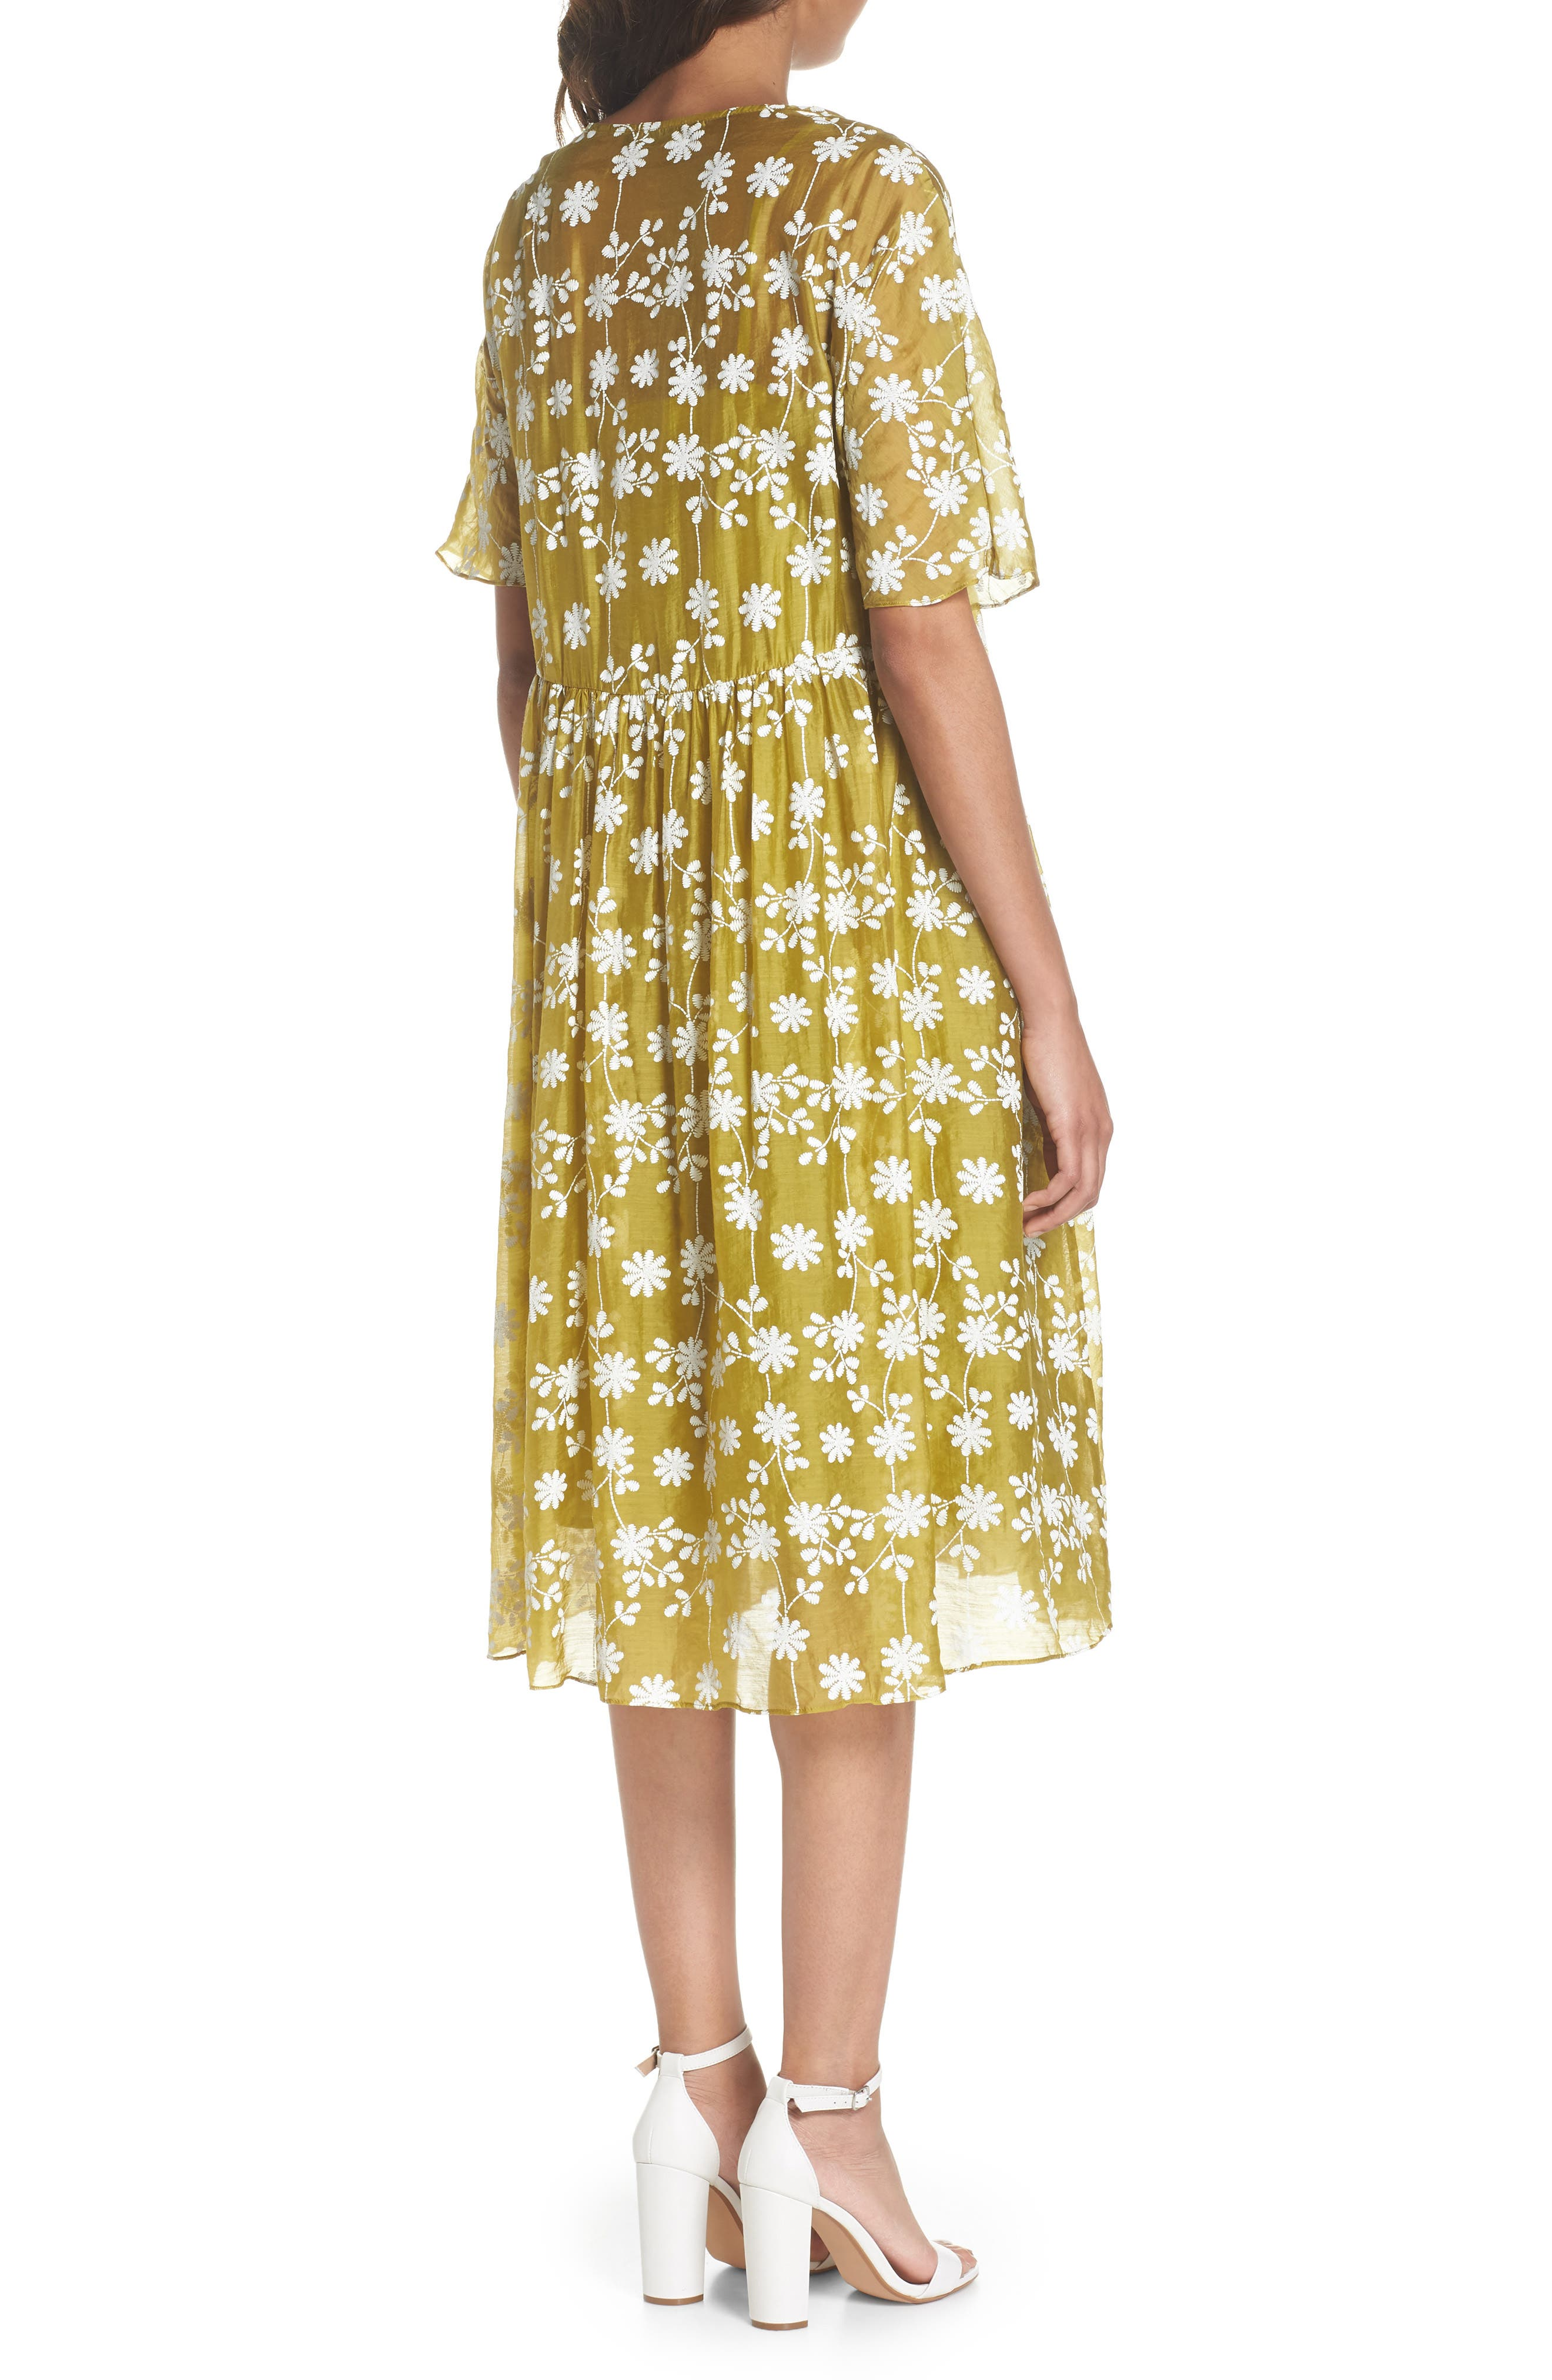 Daisy Picking Floral Dress,                             Alternate thumbnail 2, color,                             700